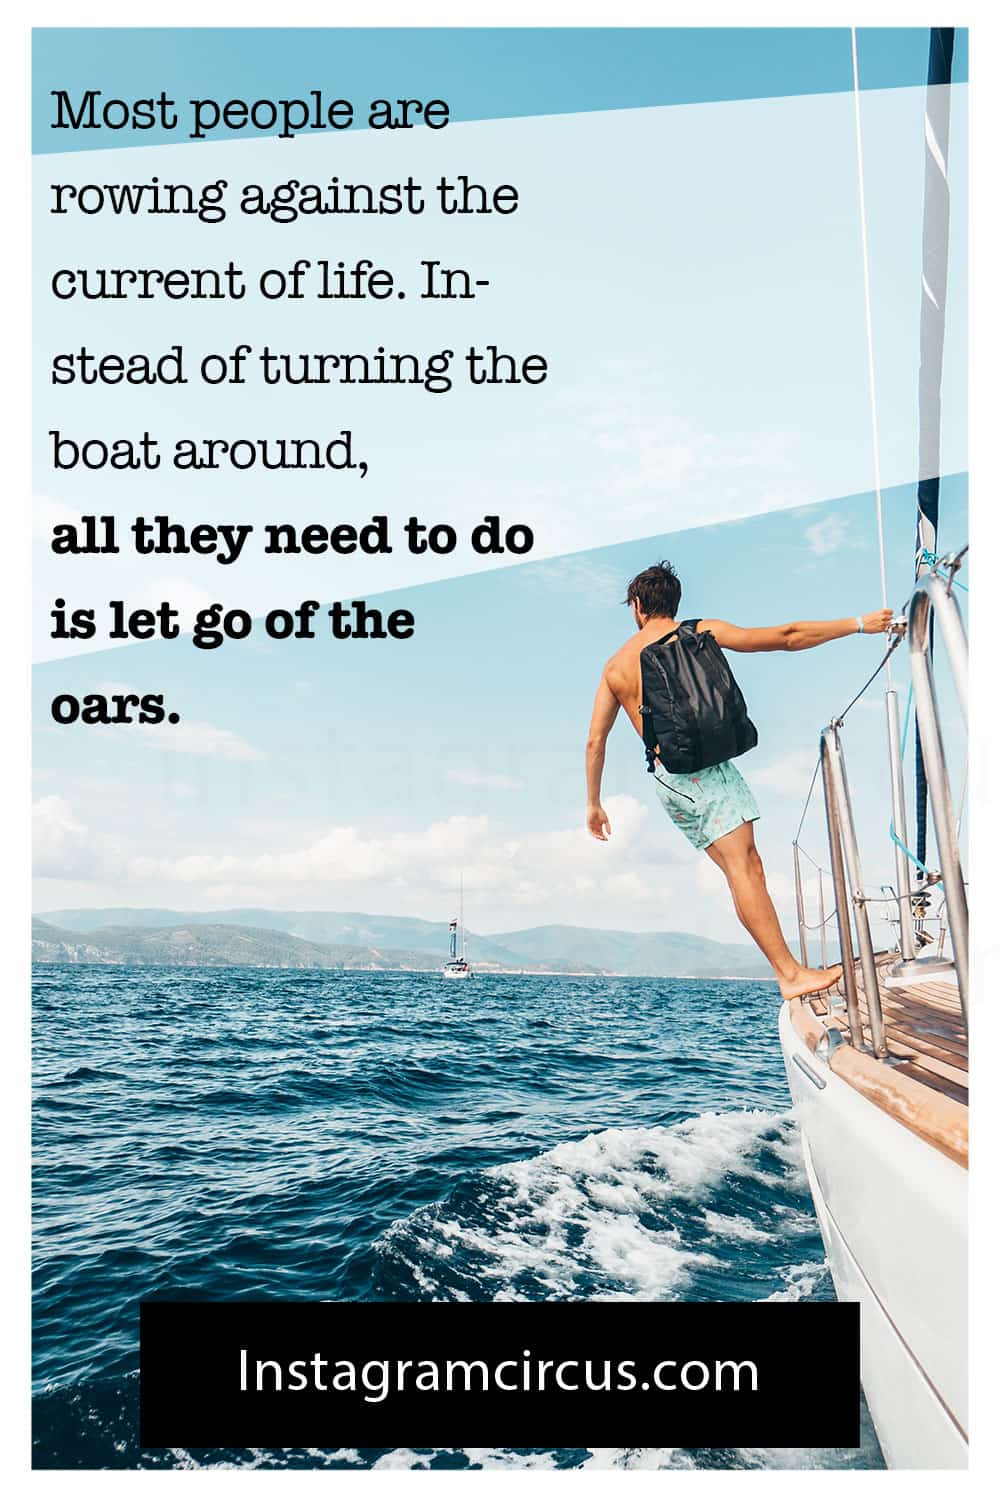 Most people are rowing against the current of life. Instead of turning the boat around, all they need to do is let go of the oars.